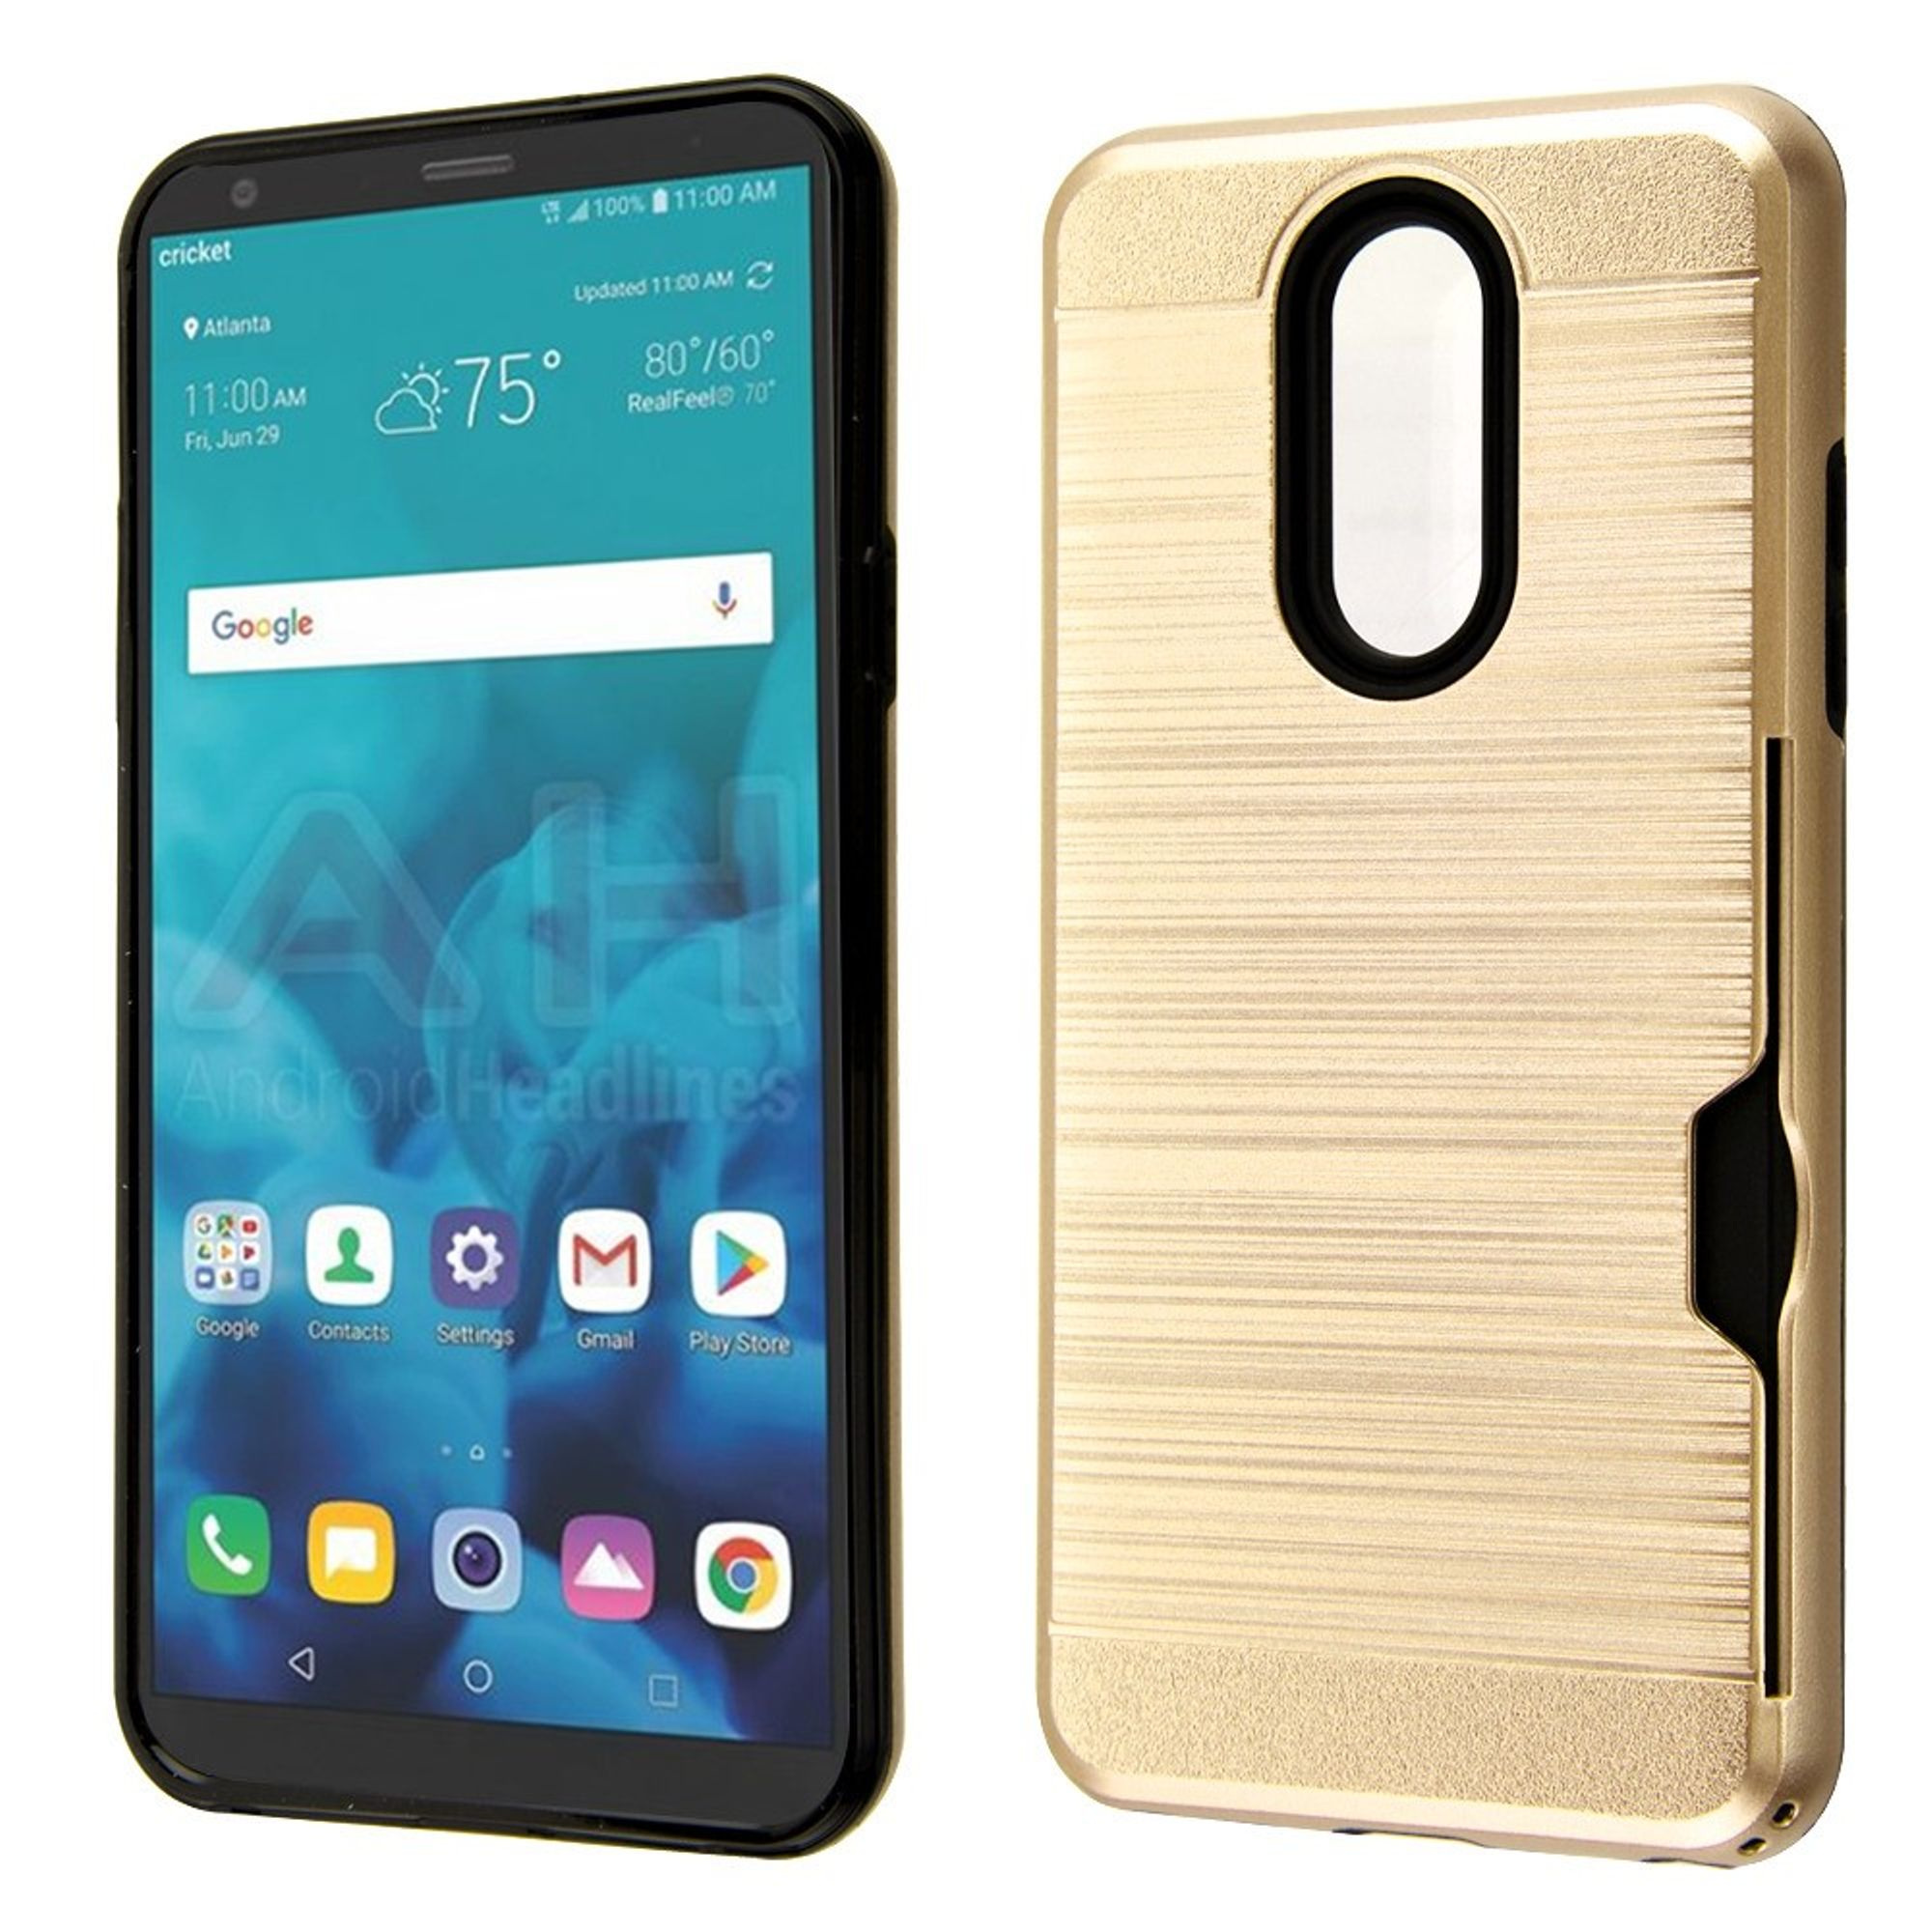 LG Stylo 4 Case, by Insten Dual Layer Hybrid Brushed PC/TPU Rubber ID/Card Slot Case Cover For LG Stylo 4 - Gold/Black